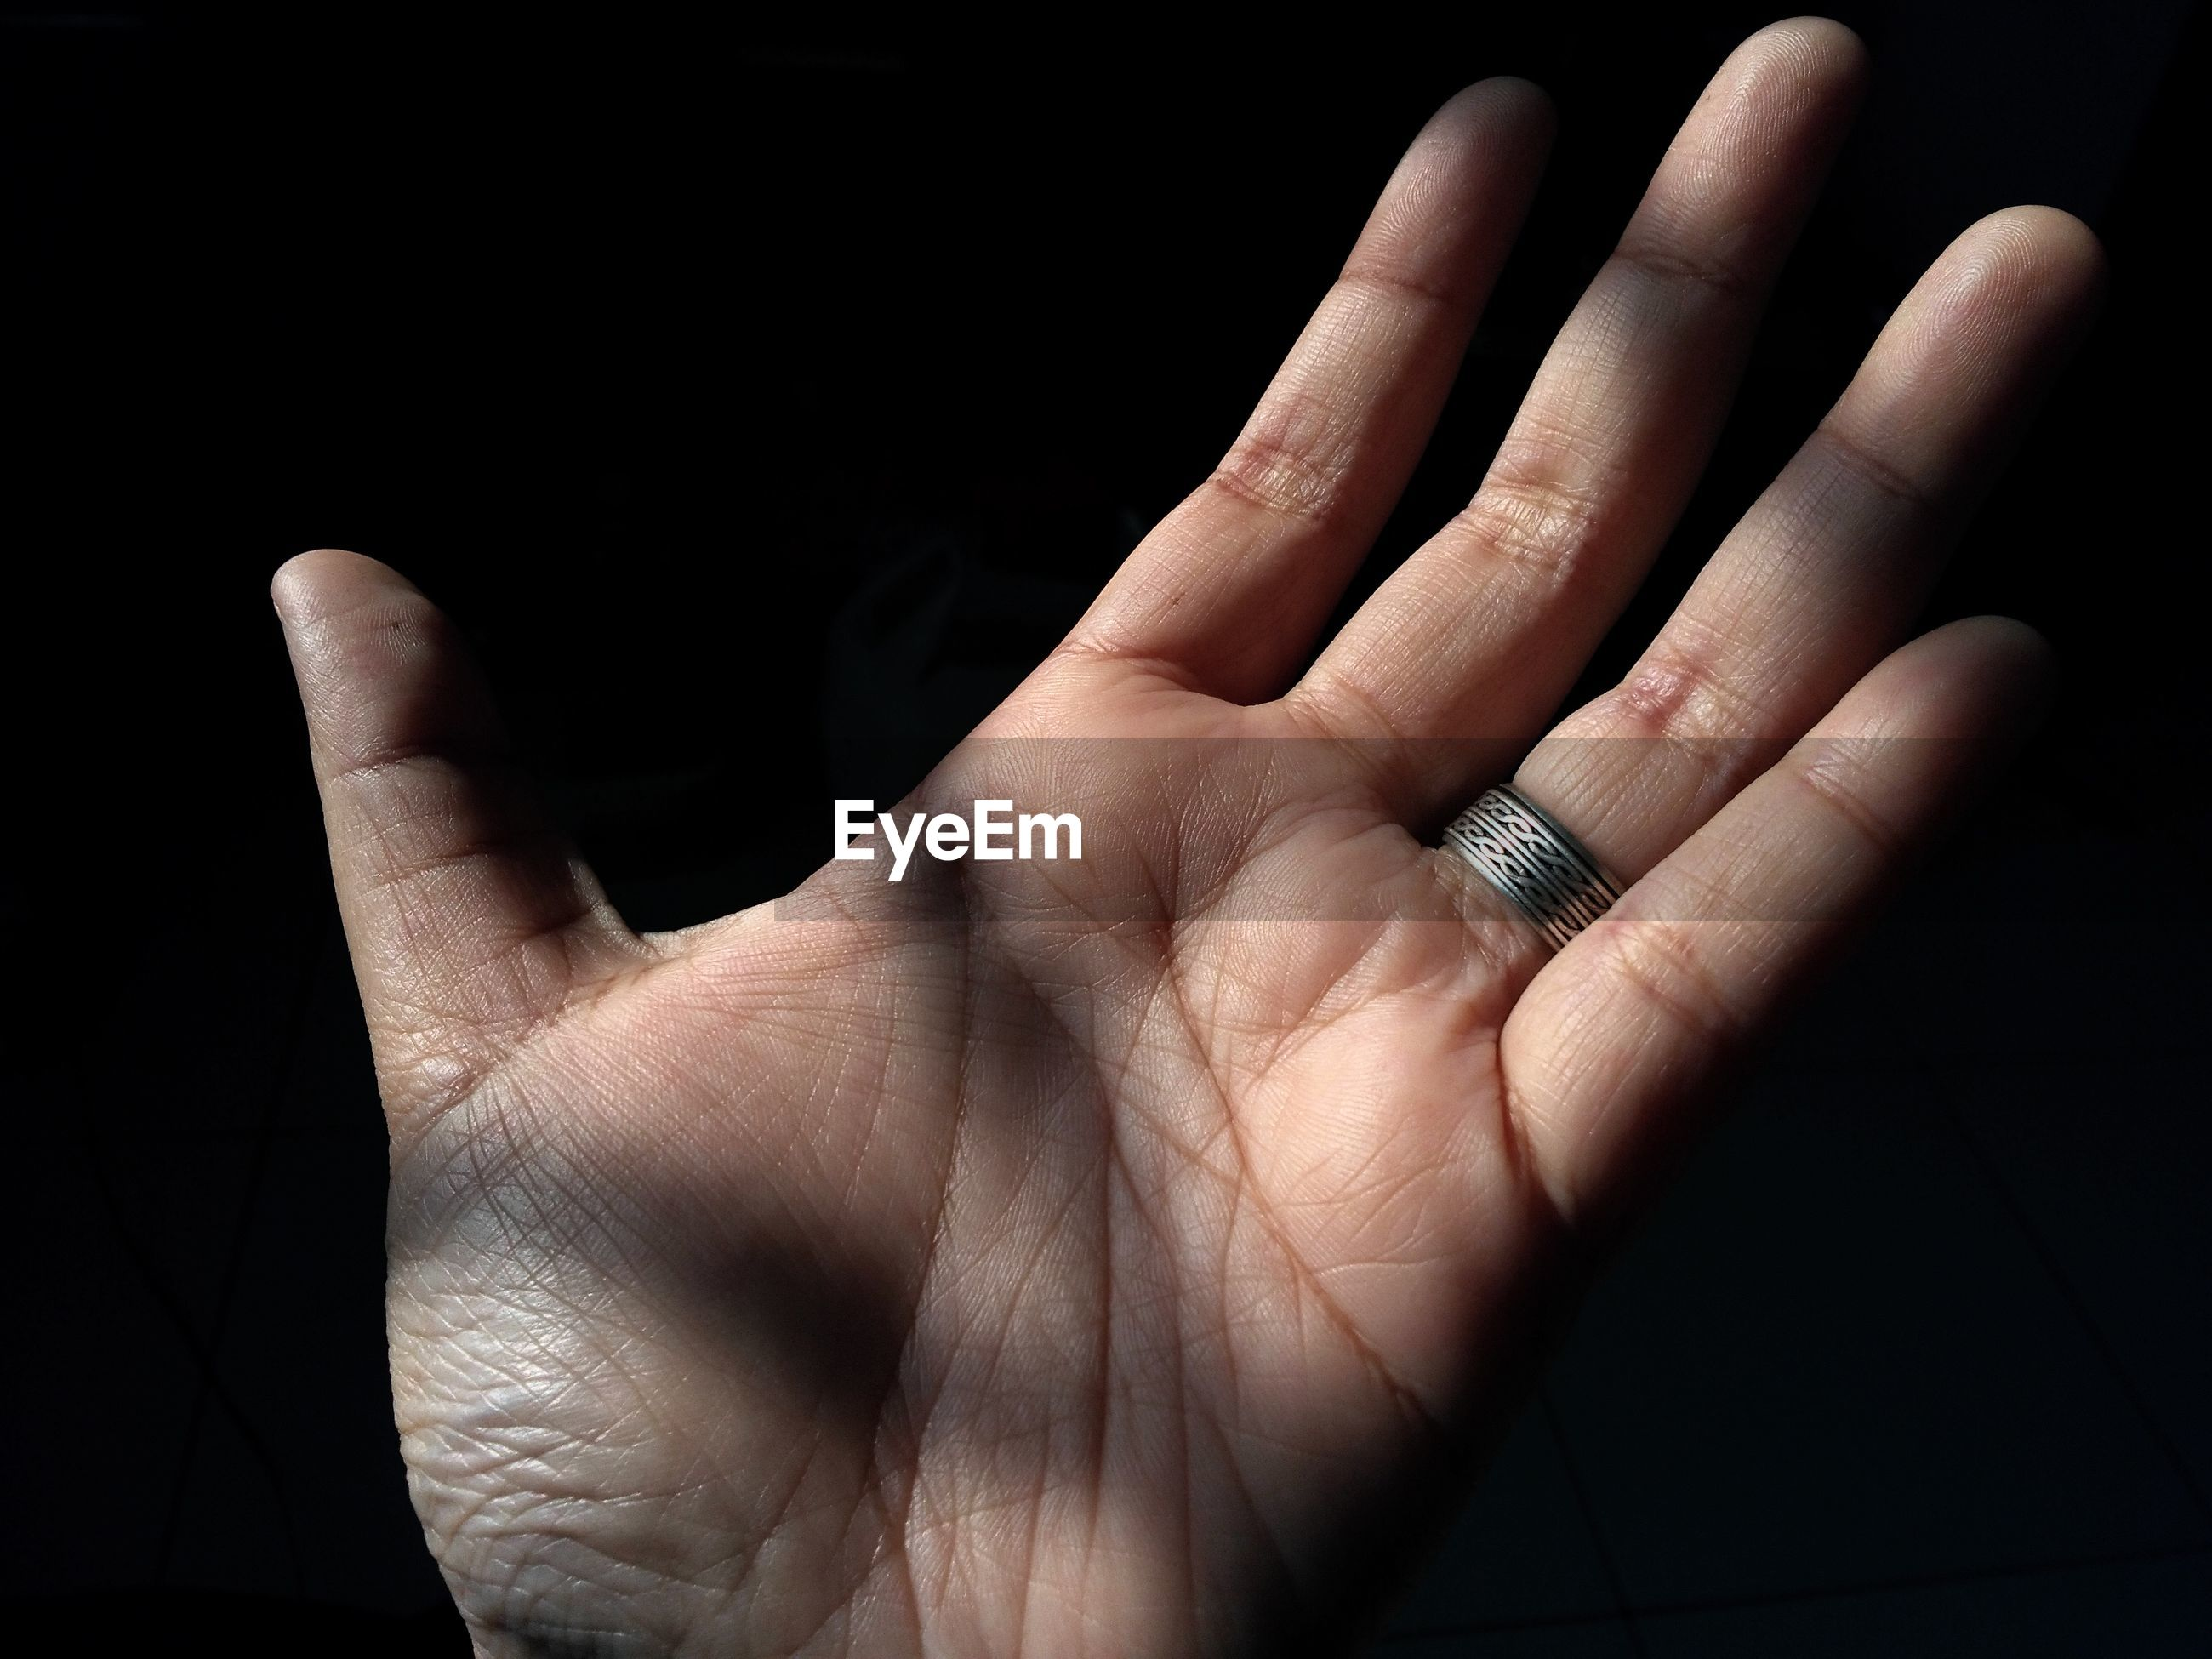 Cropped hand of woman wearing ring against black background